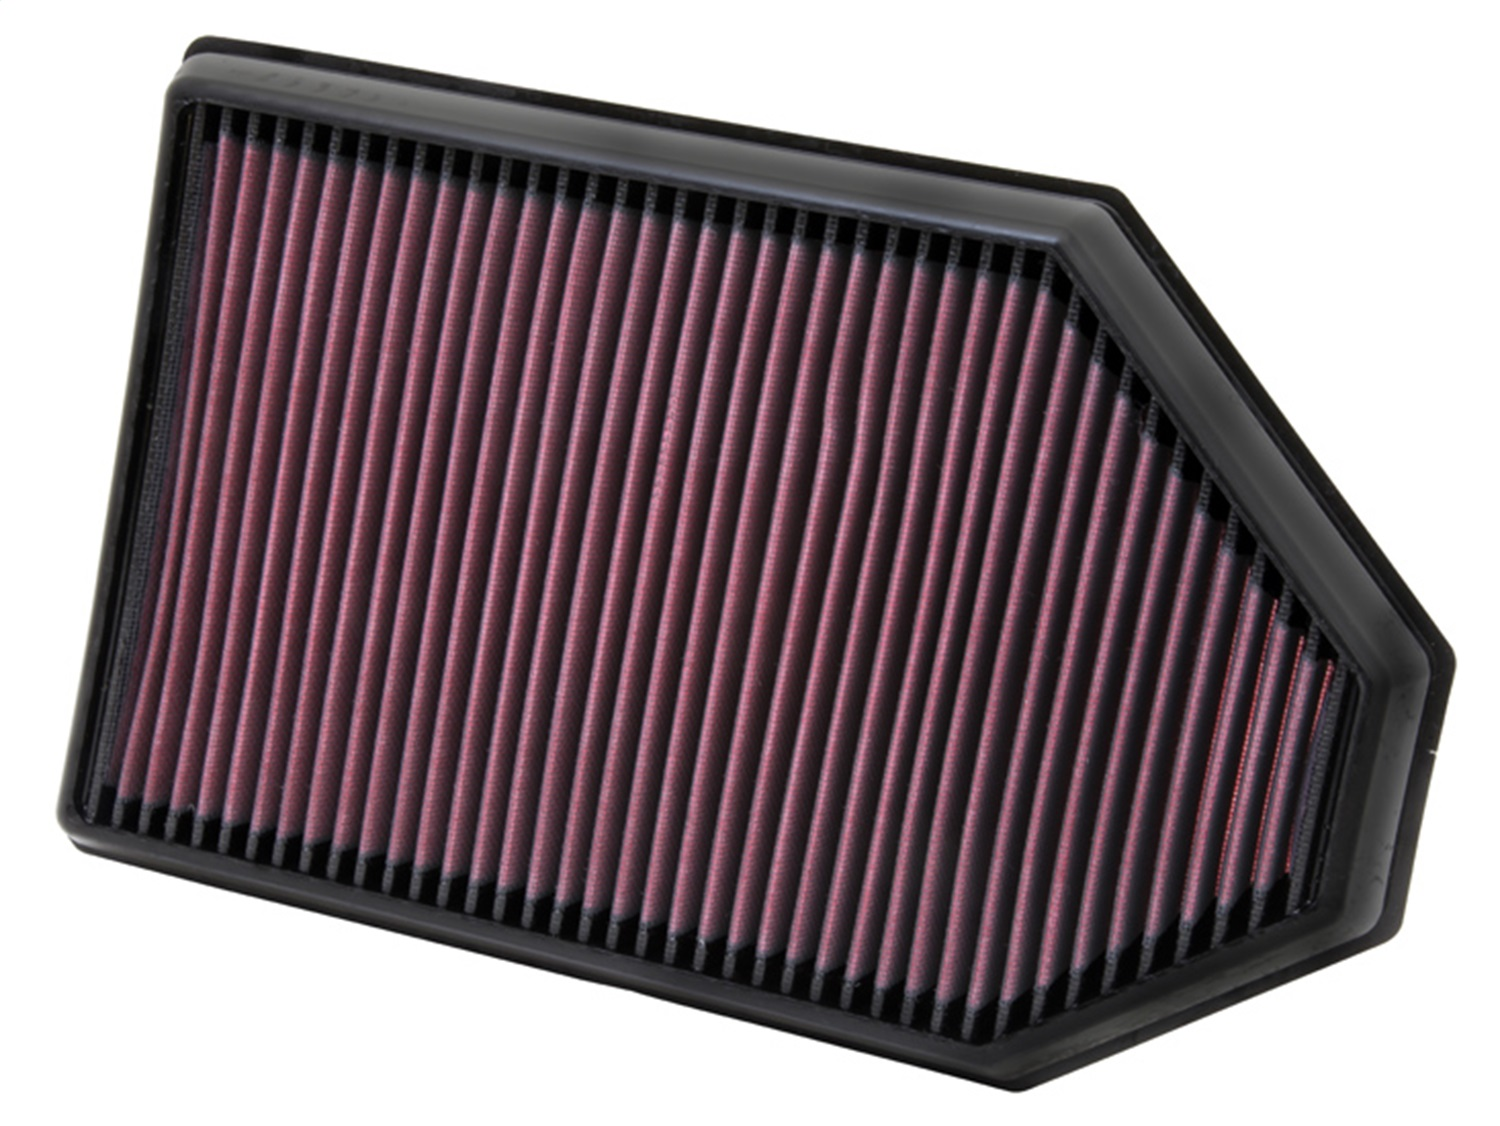 K&N Filters 33-2460 Air Filter Fits 11-15 300 Challenger Charger 33-2460